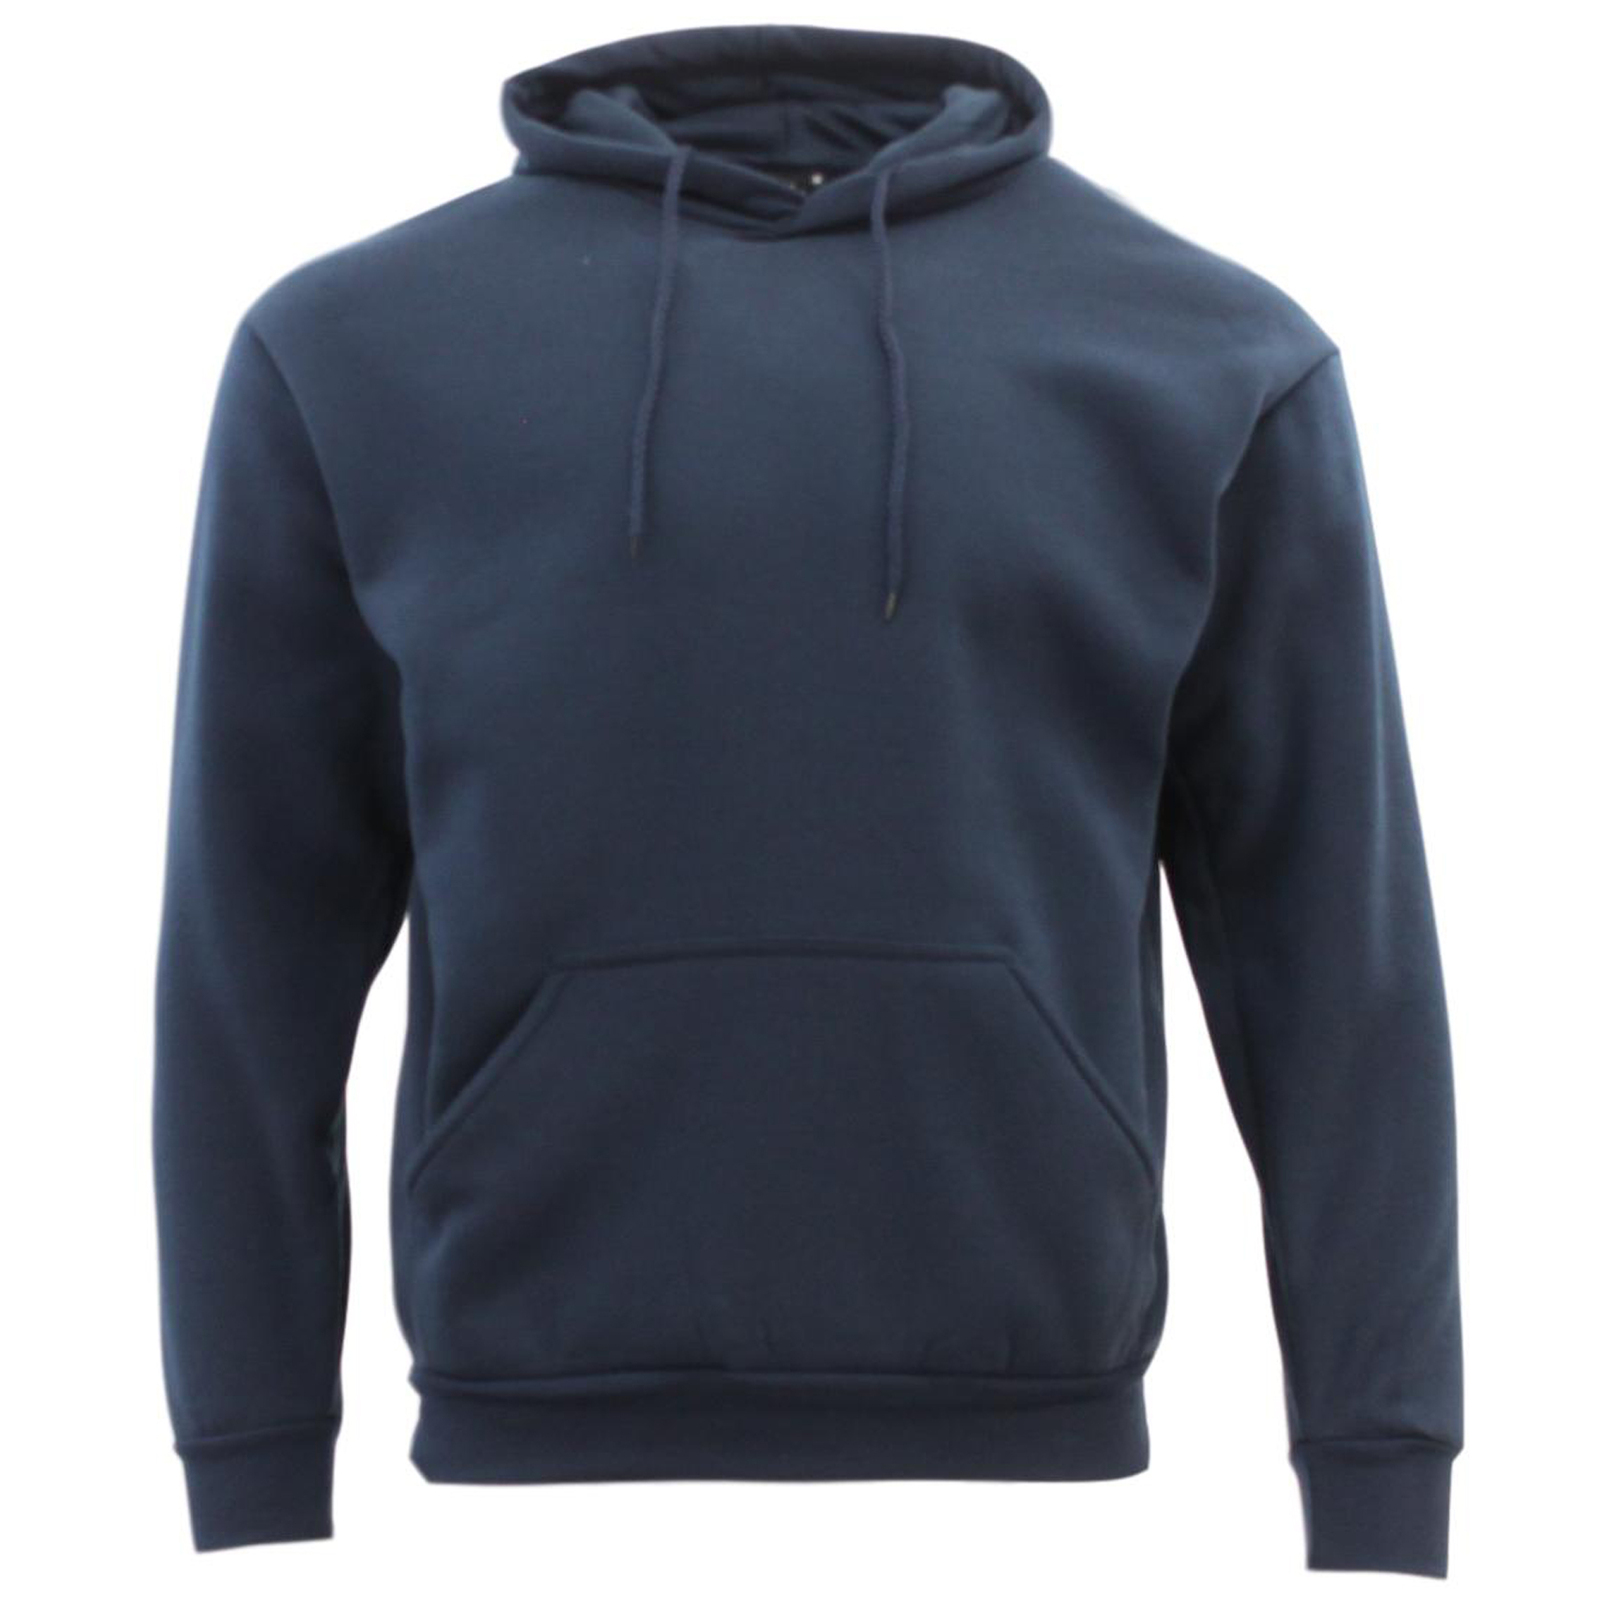 Adult-Men-039-s-Unisex-Basic-Plain-Hoodie-Jumper-Pullover-Sweater-Sweatshirt-XS-5XL thumbnail 15